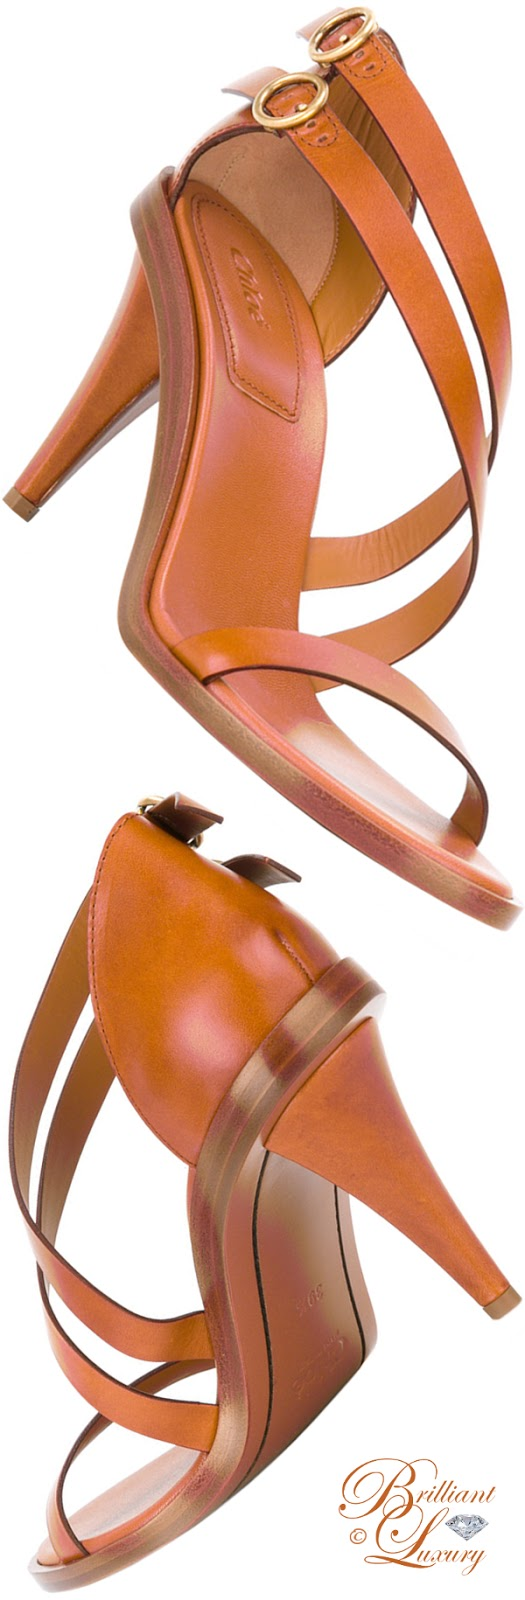 Brilliant Luxury ♦ Chloé Niko Cone Heeled Sandal